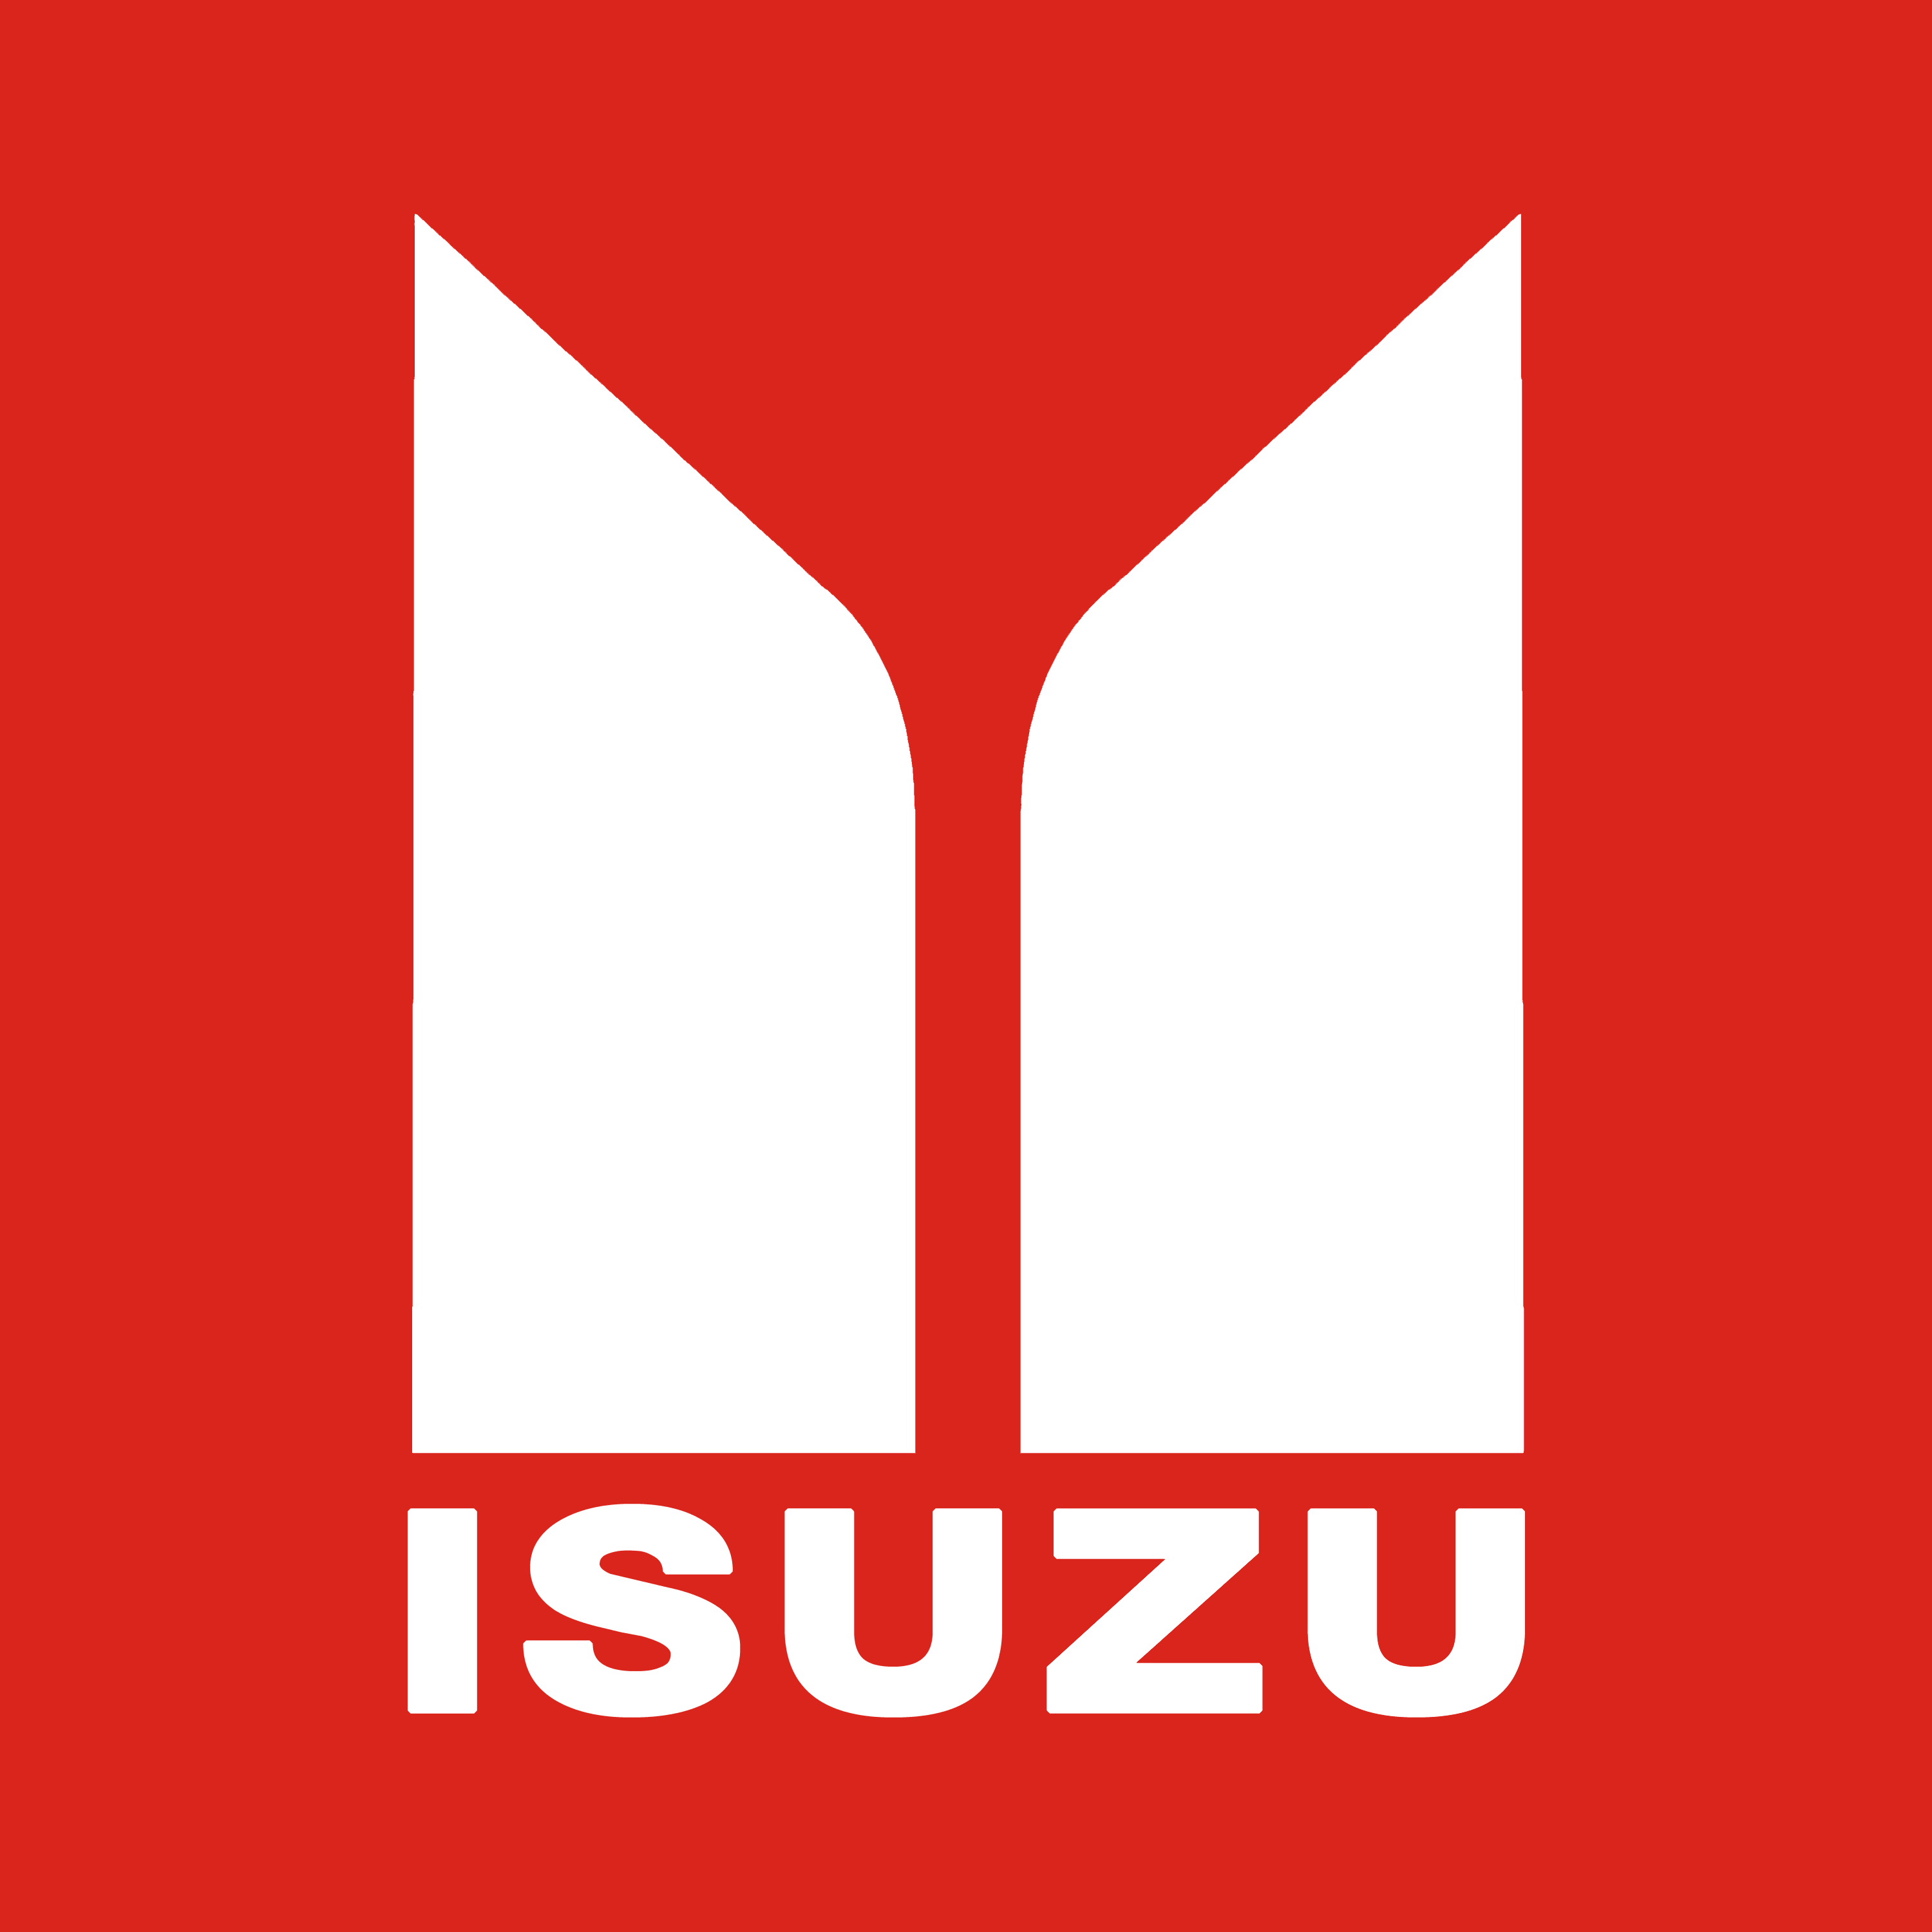 ISIZU Logo Wallpaper